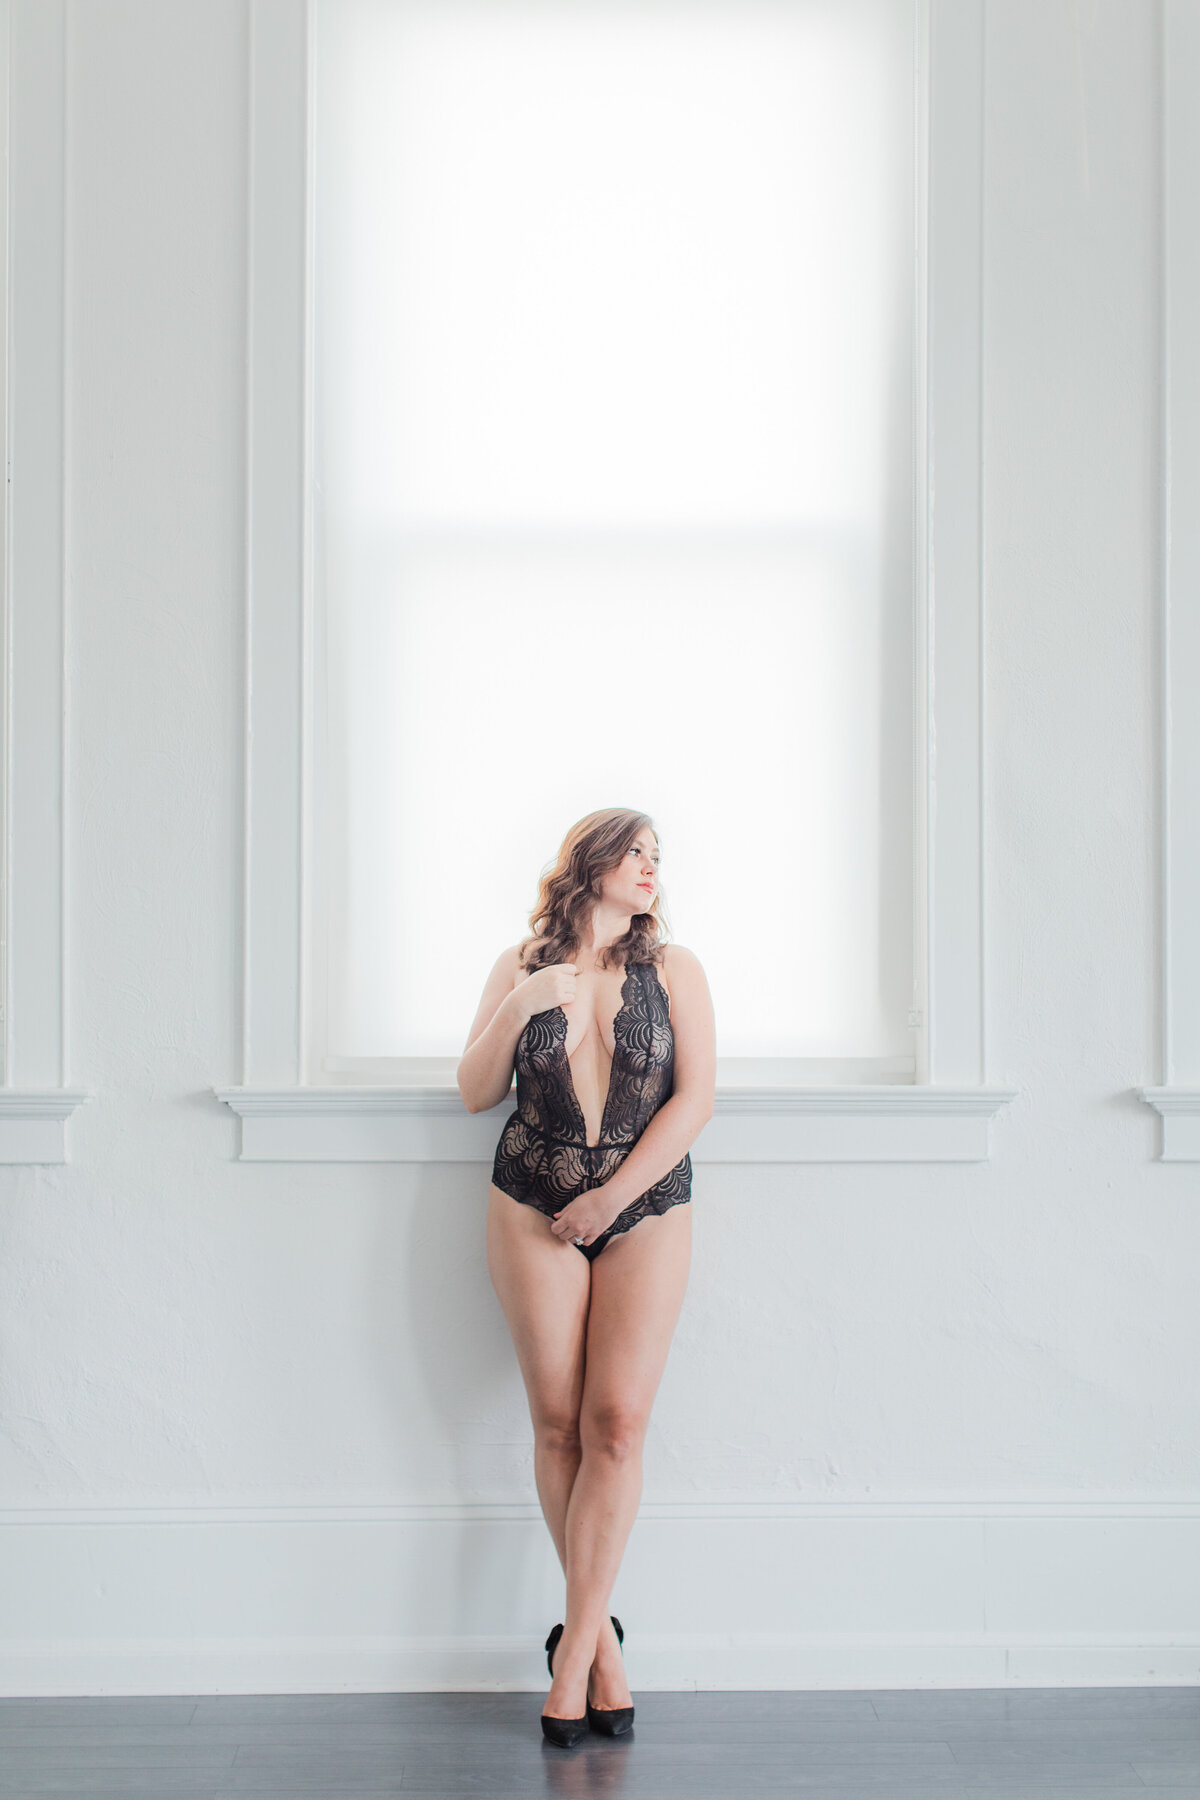 Light_and_Airy_Boudoir_Photography_White_Box_Studios-12